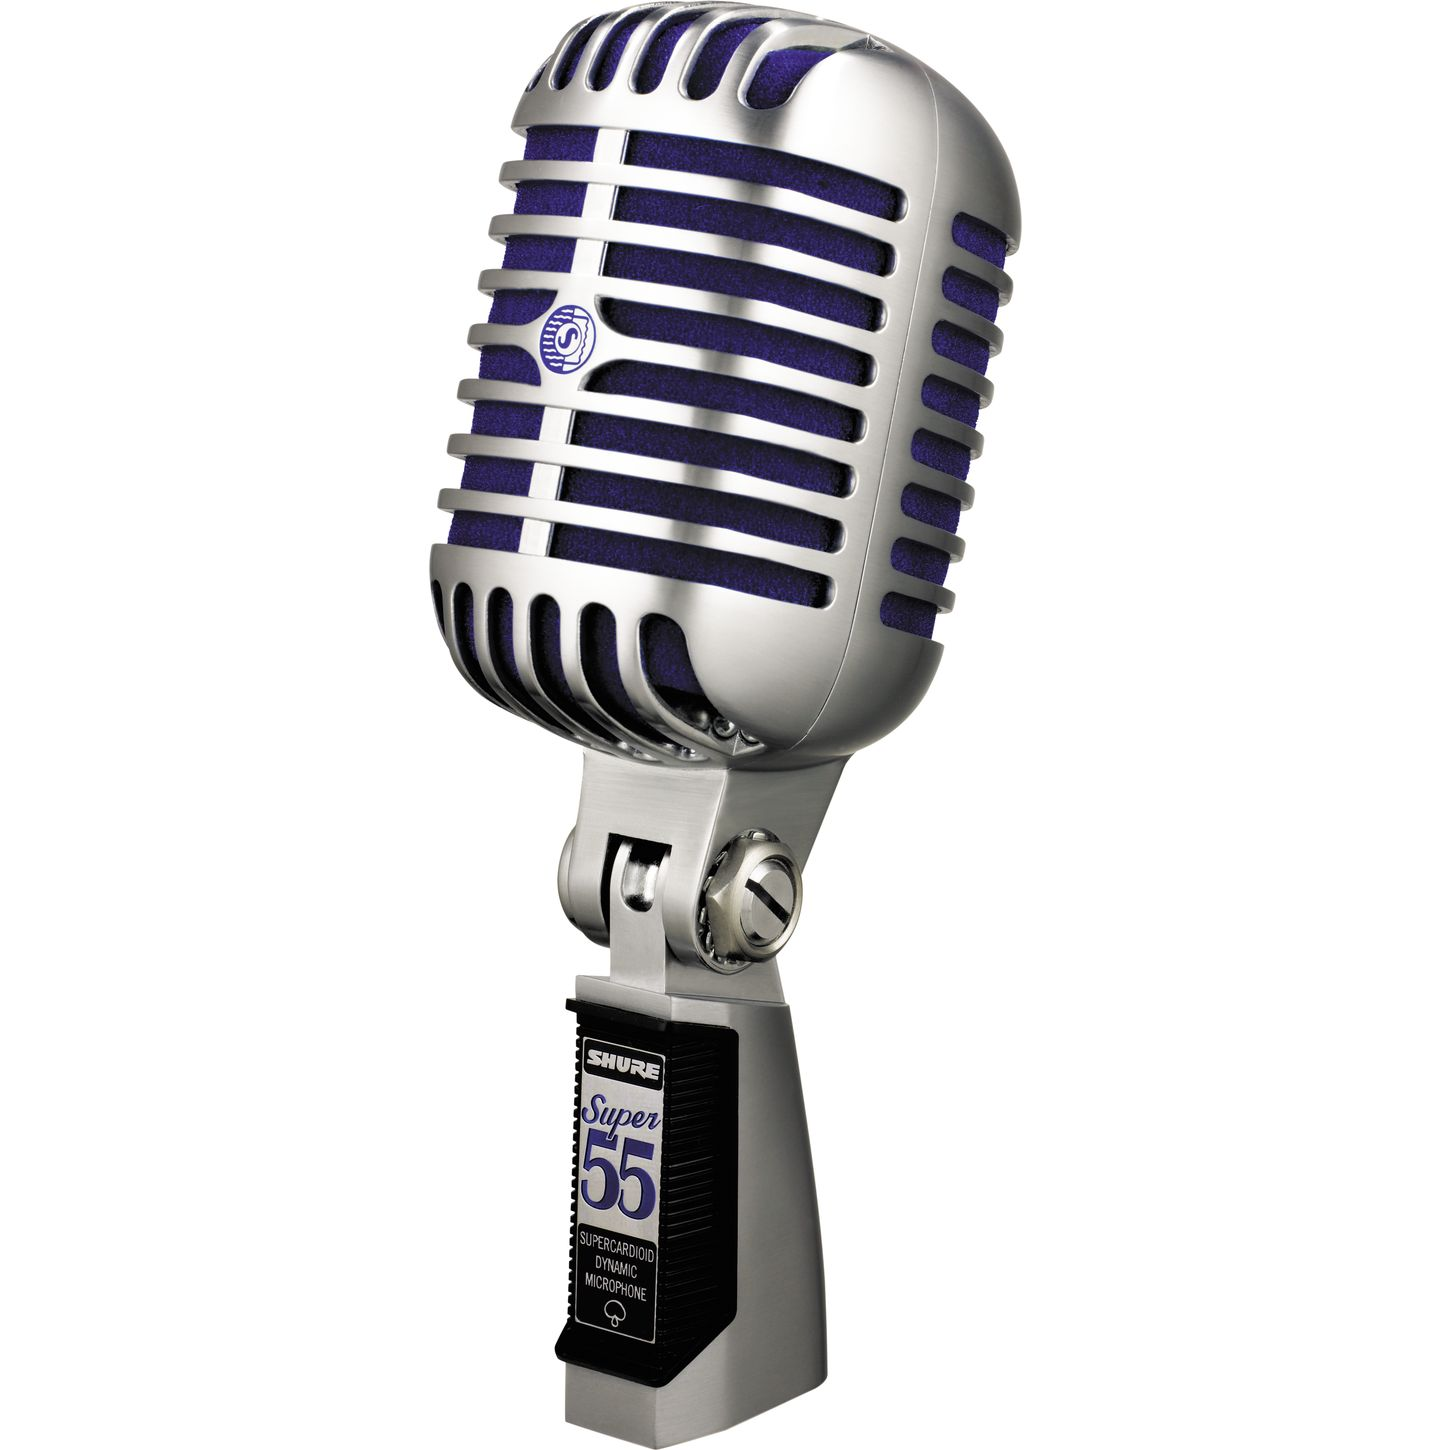 Microphone Stand Spotlight Clipart - PNG Vintage Microphone